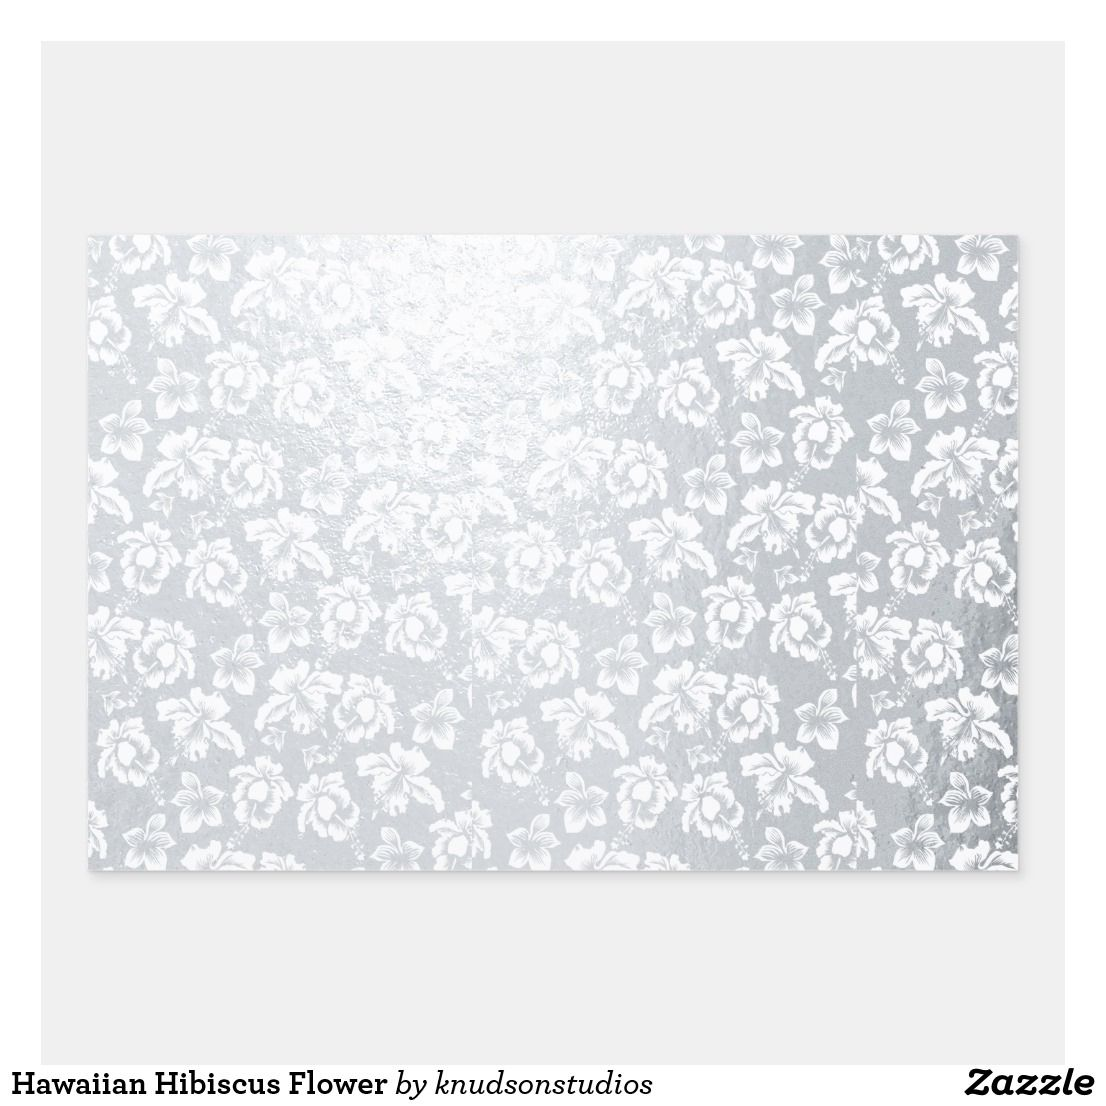 Hawaiian hibiscus flower foil wrapping paper sheets